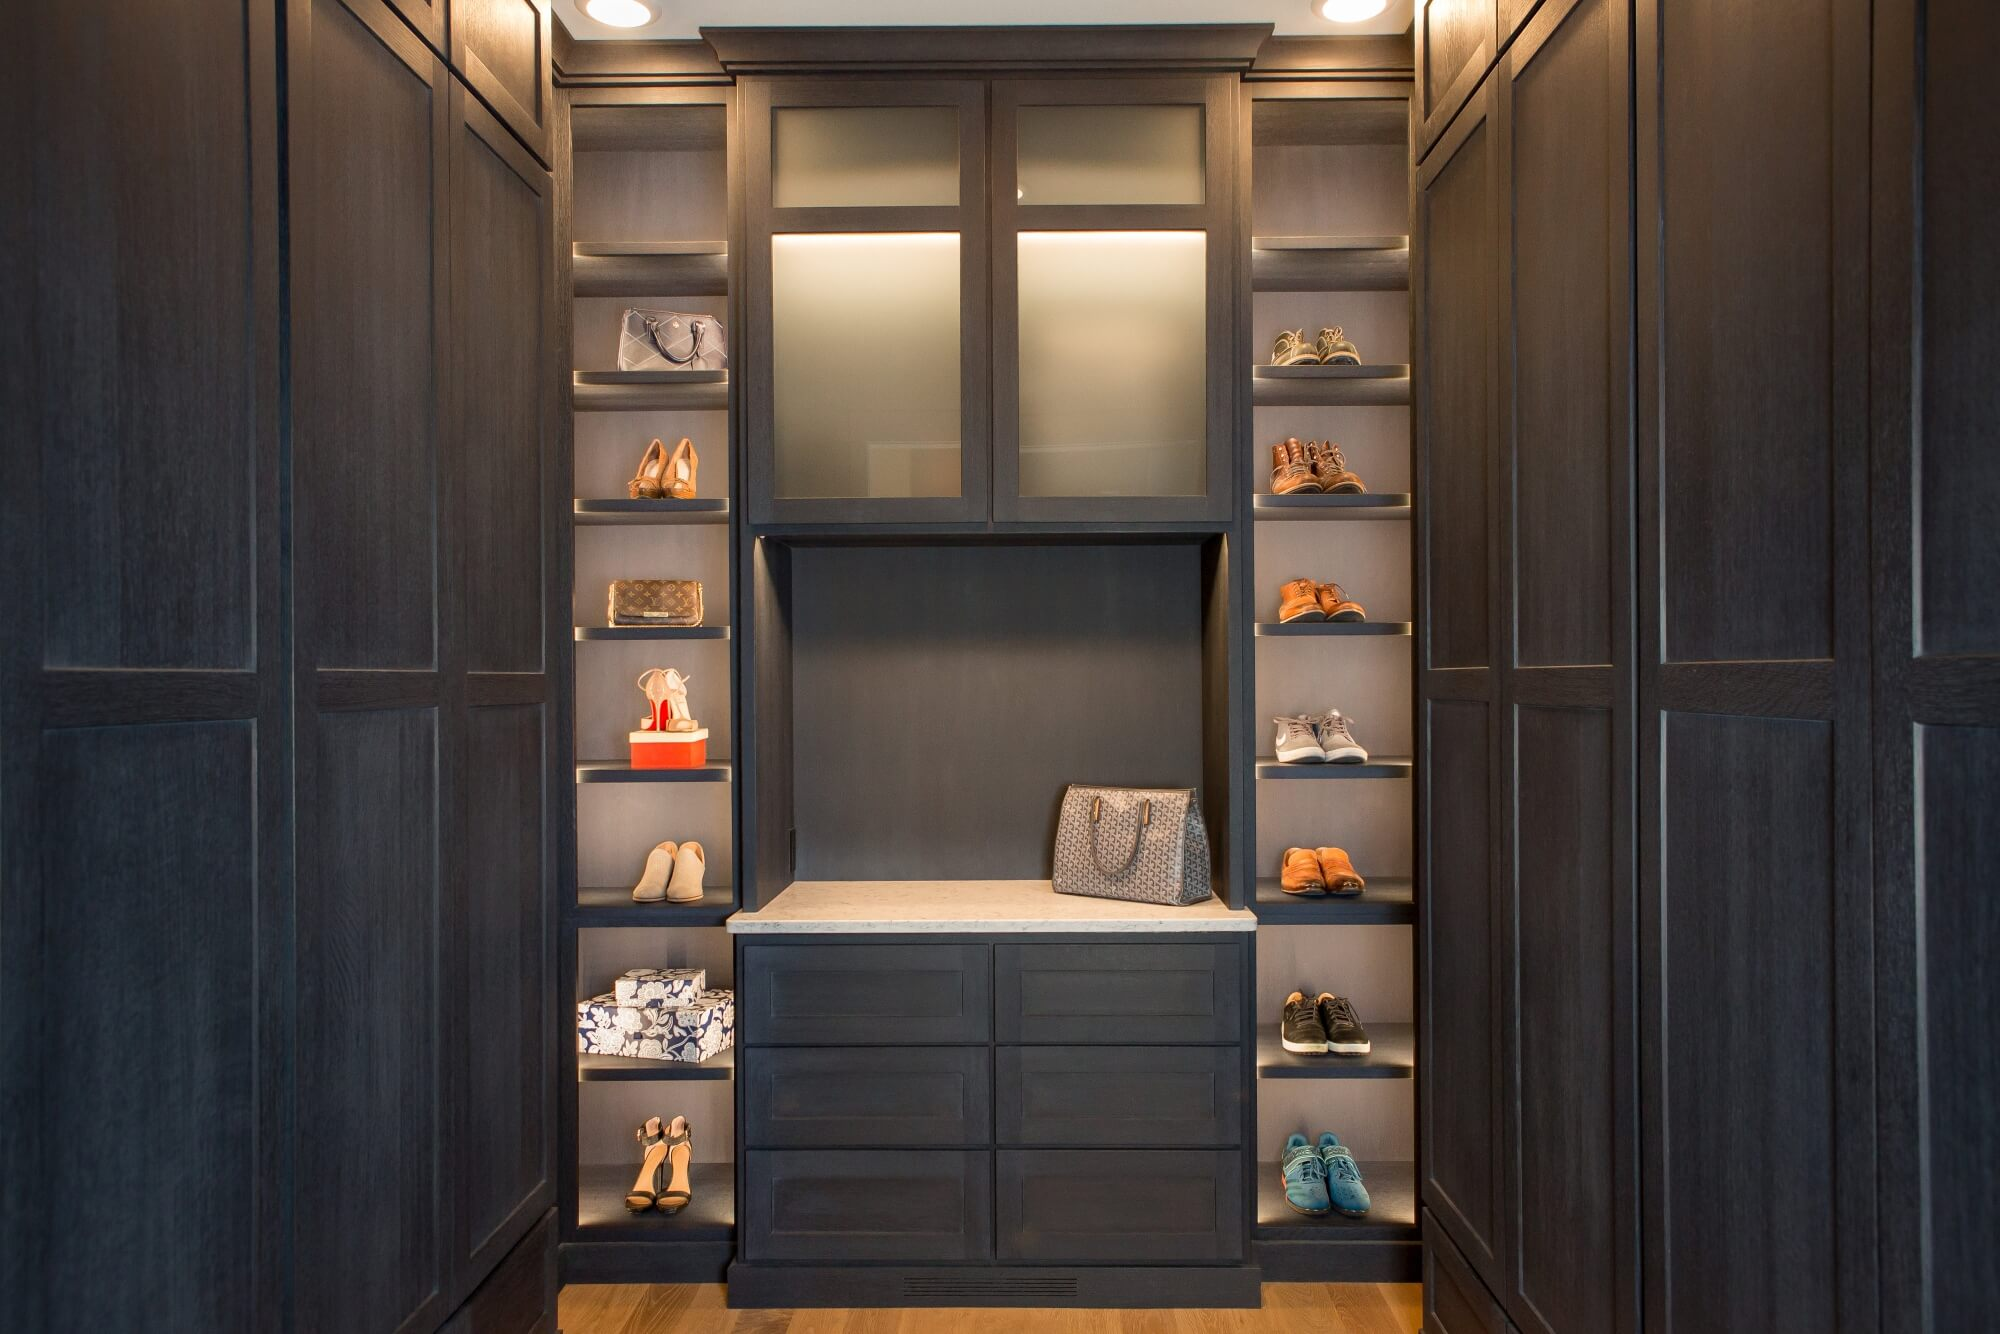 Luxury closet with shoe shelving and dark cabinetry.